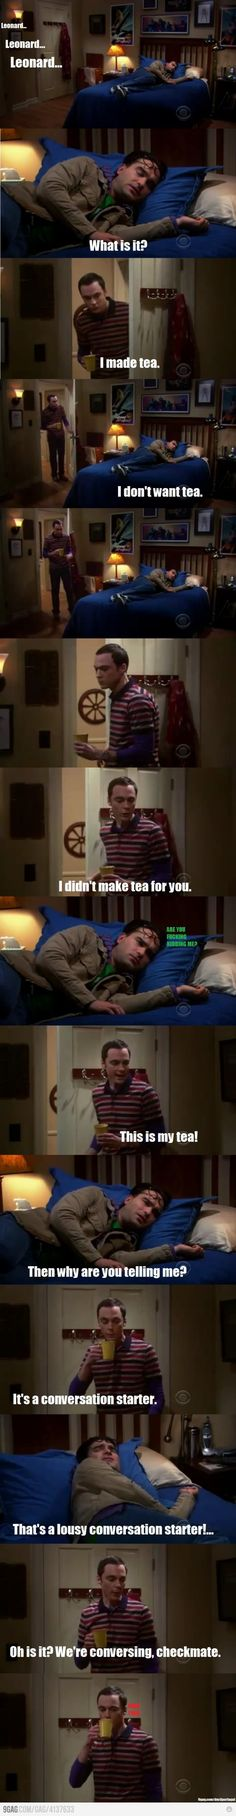 Sheldon Cooper being Sheldon Cooper.